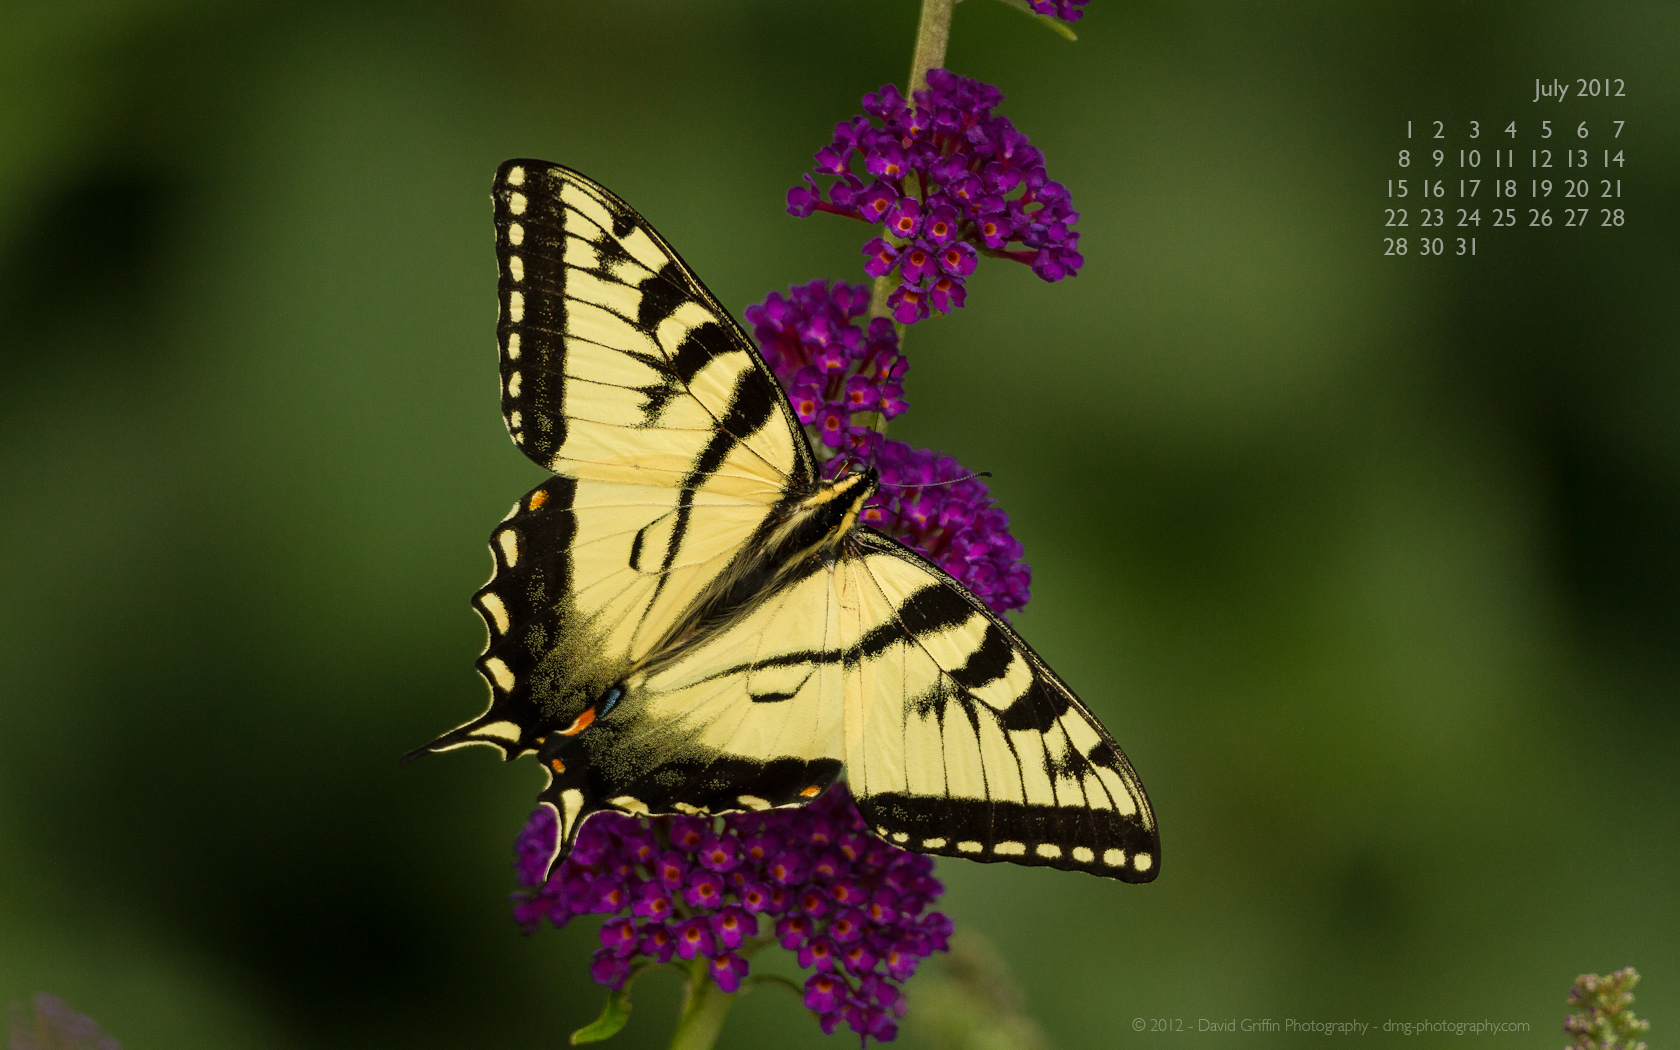 A Tiger Swallowtail Butterfly Feeds on a Thistle Flower Photographic